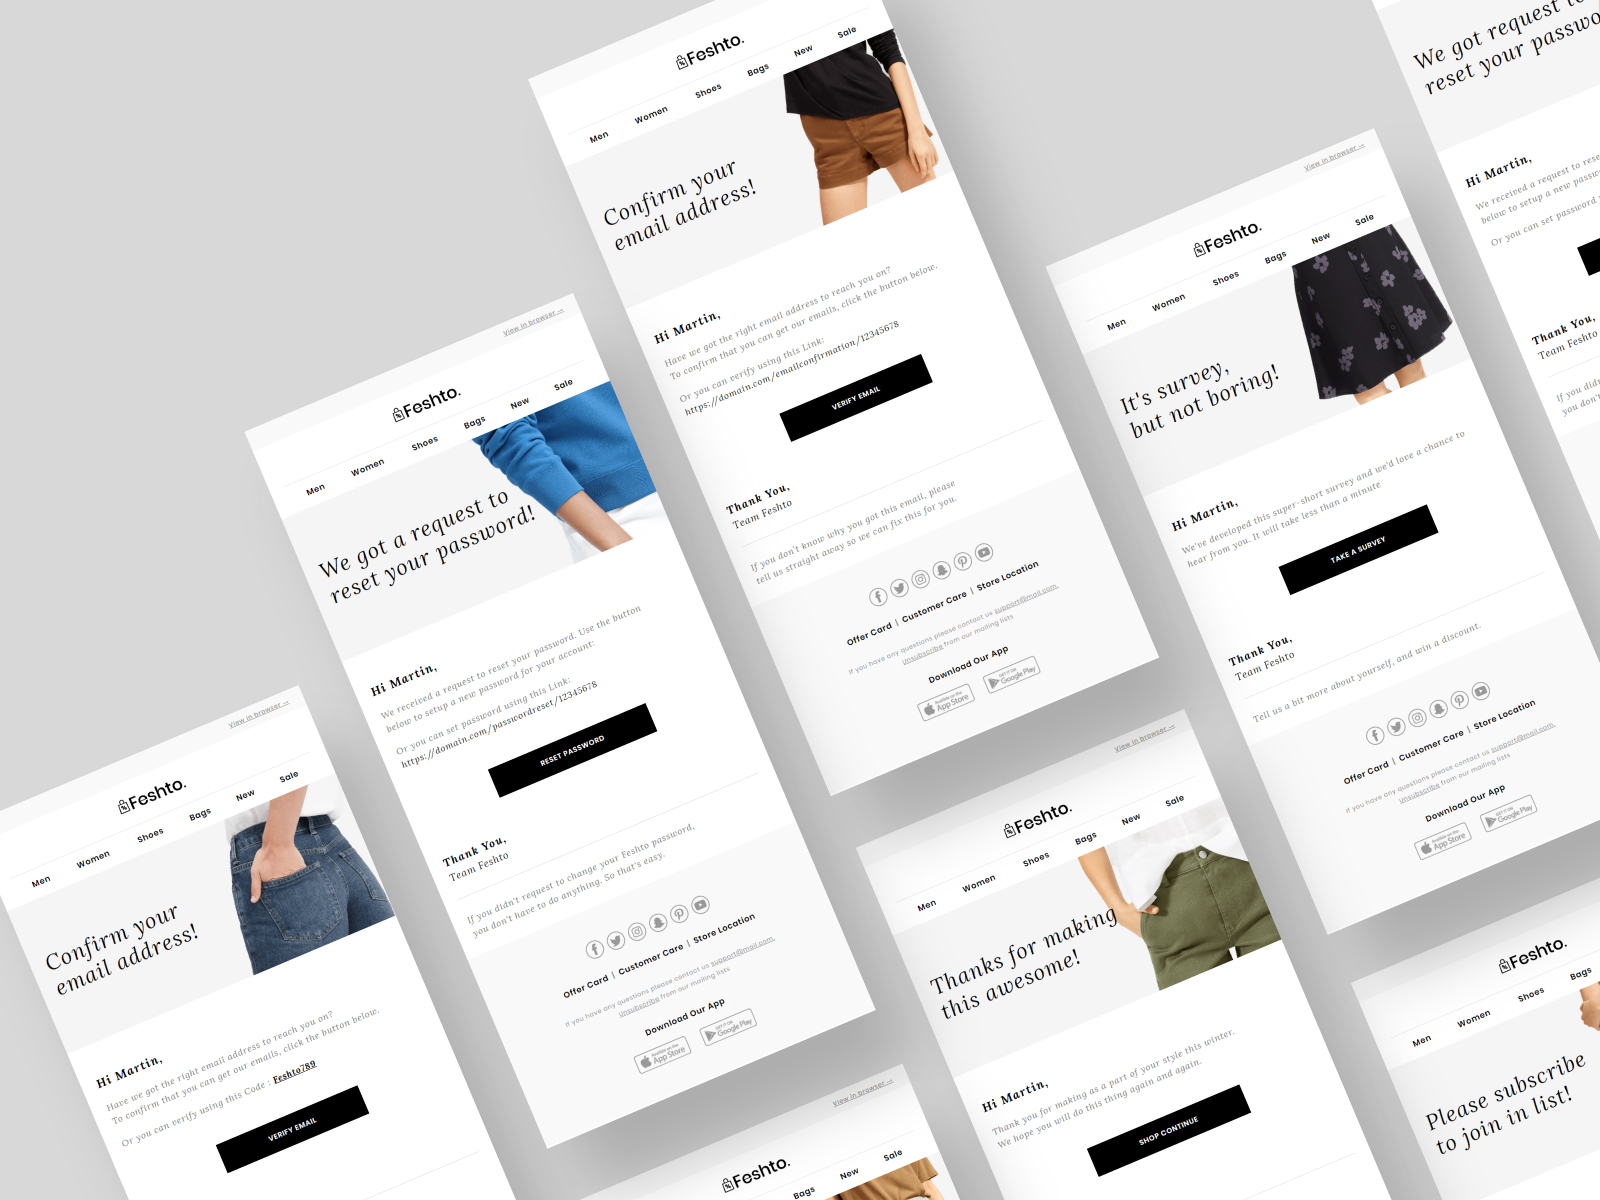 Feshto - Fashion Email Bundle. cover image